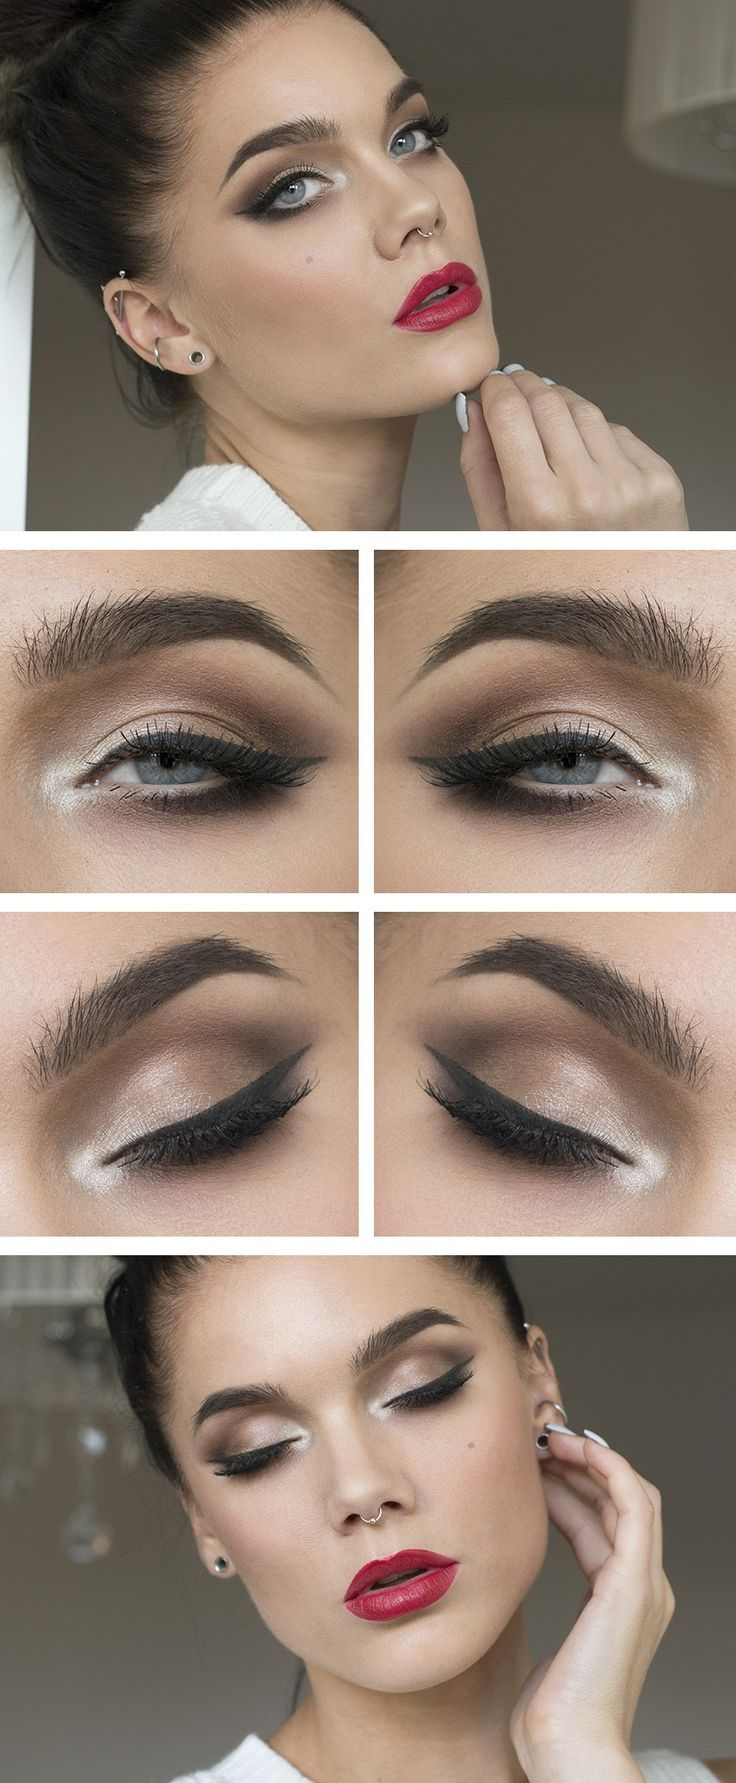 Best #Makeup Tips And #Ideas We Have Learnt From Our Moms http://www.everydaynewfashions.com/